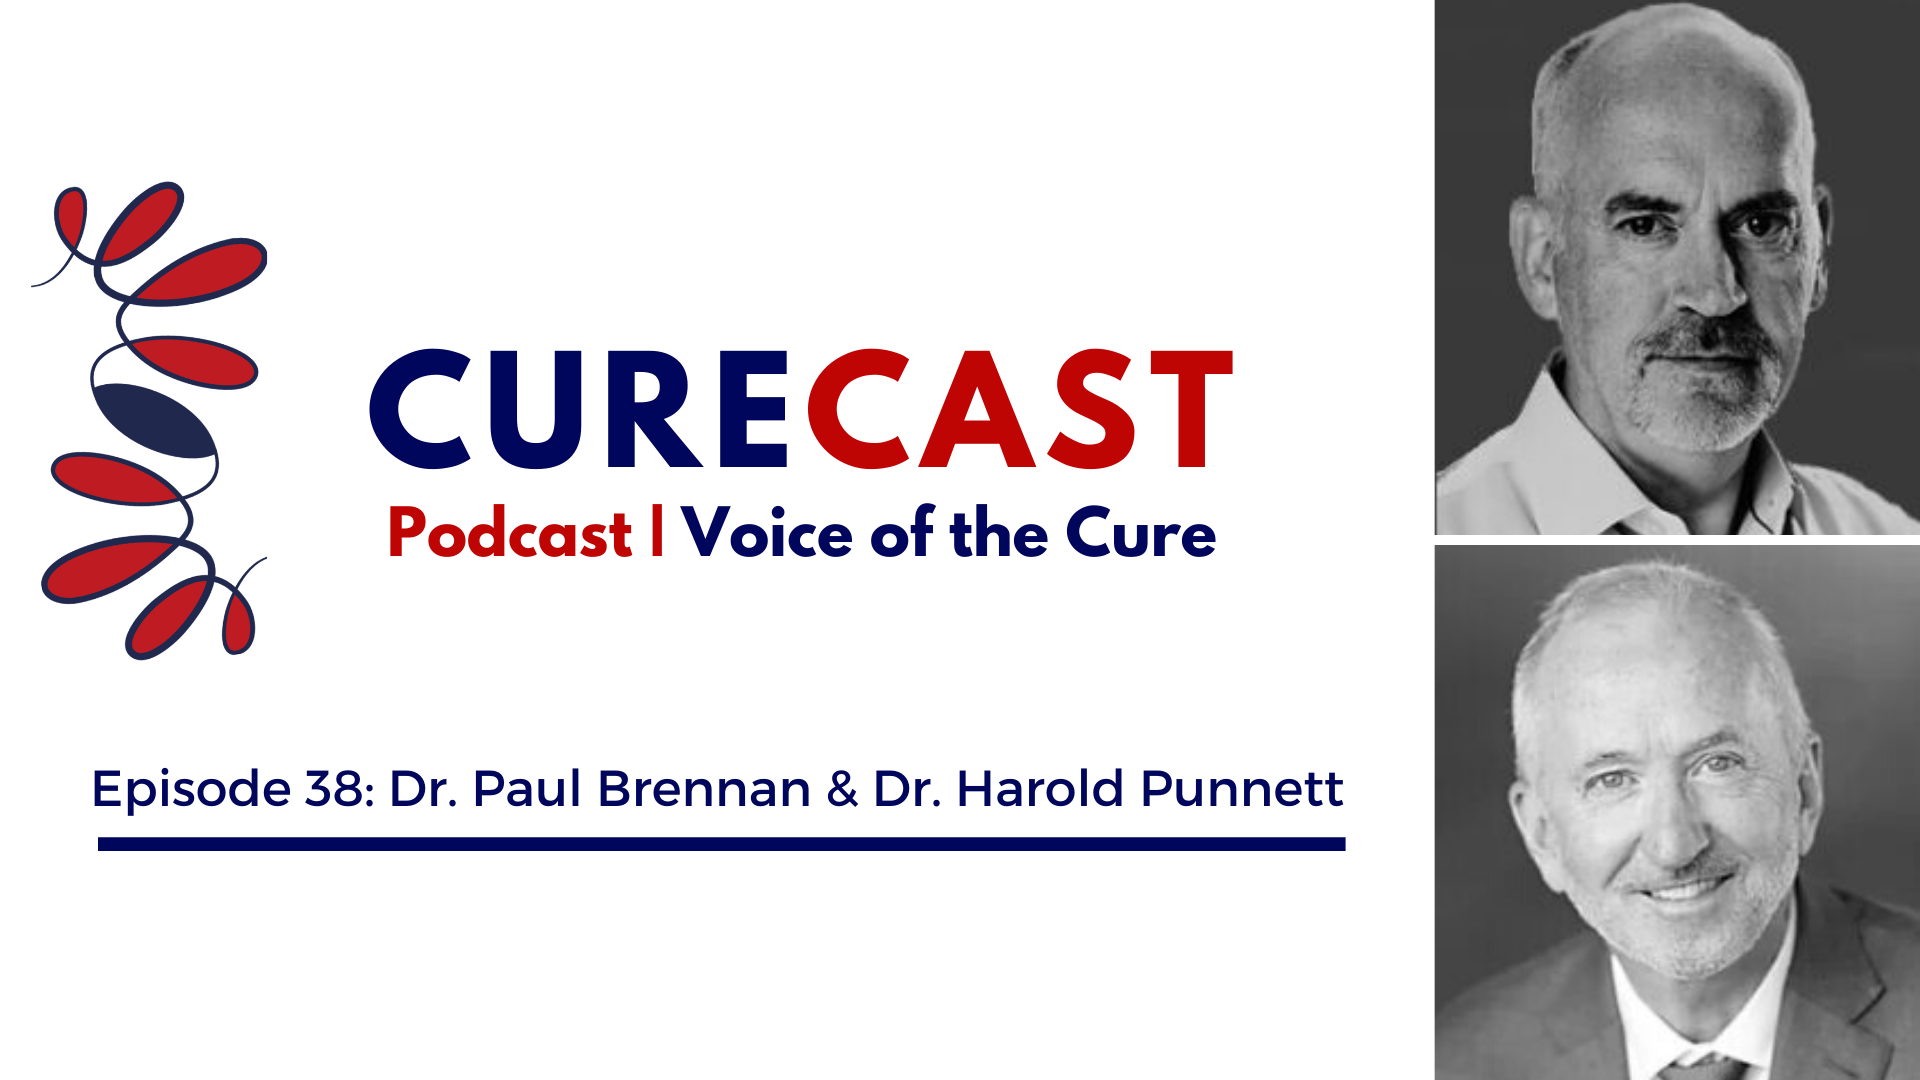 CureCast Episode 38: An Interview with NervGen Pharma's Paul Brennan & Harold Punnett